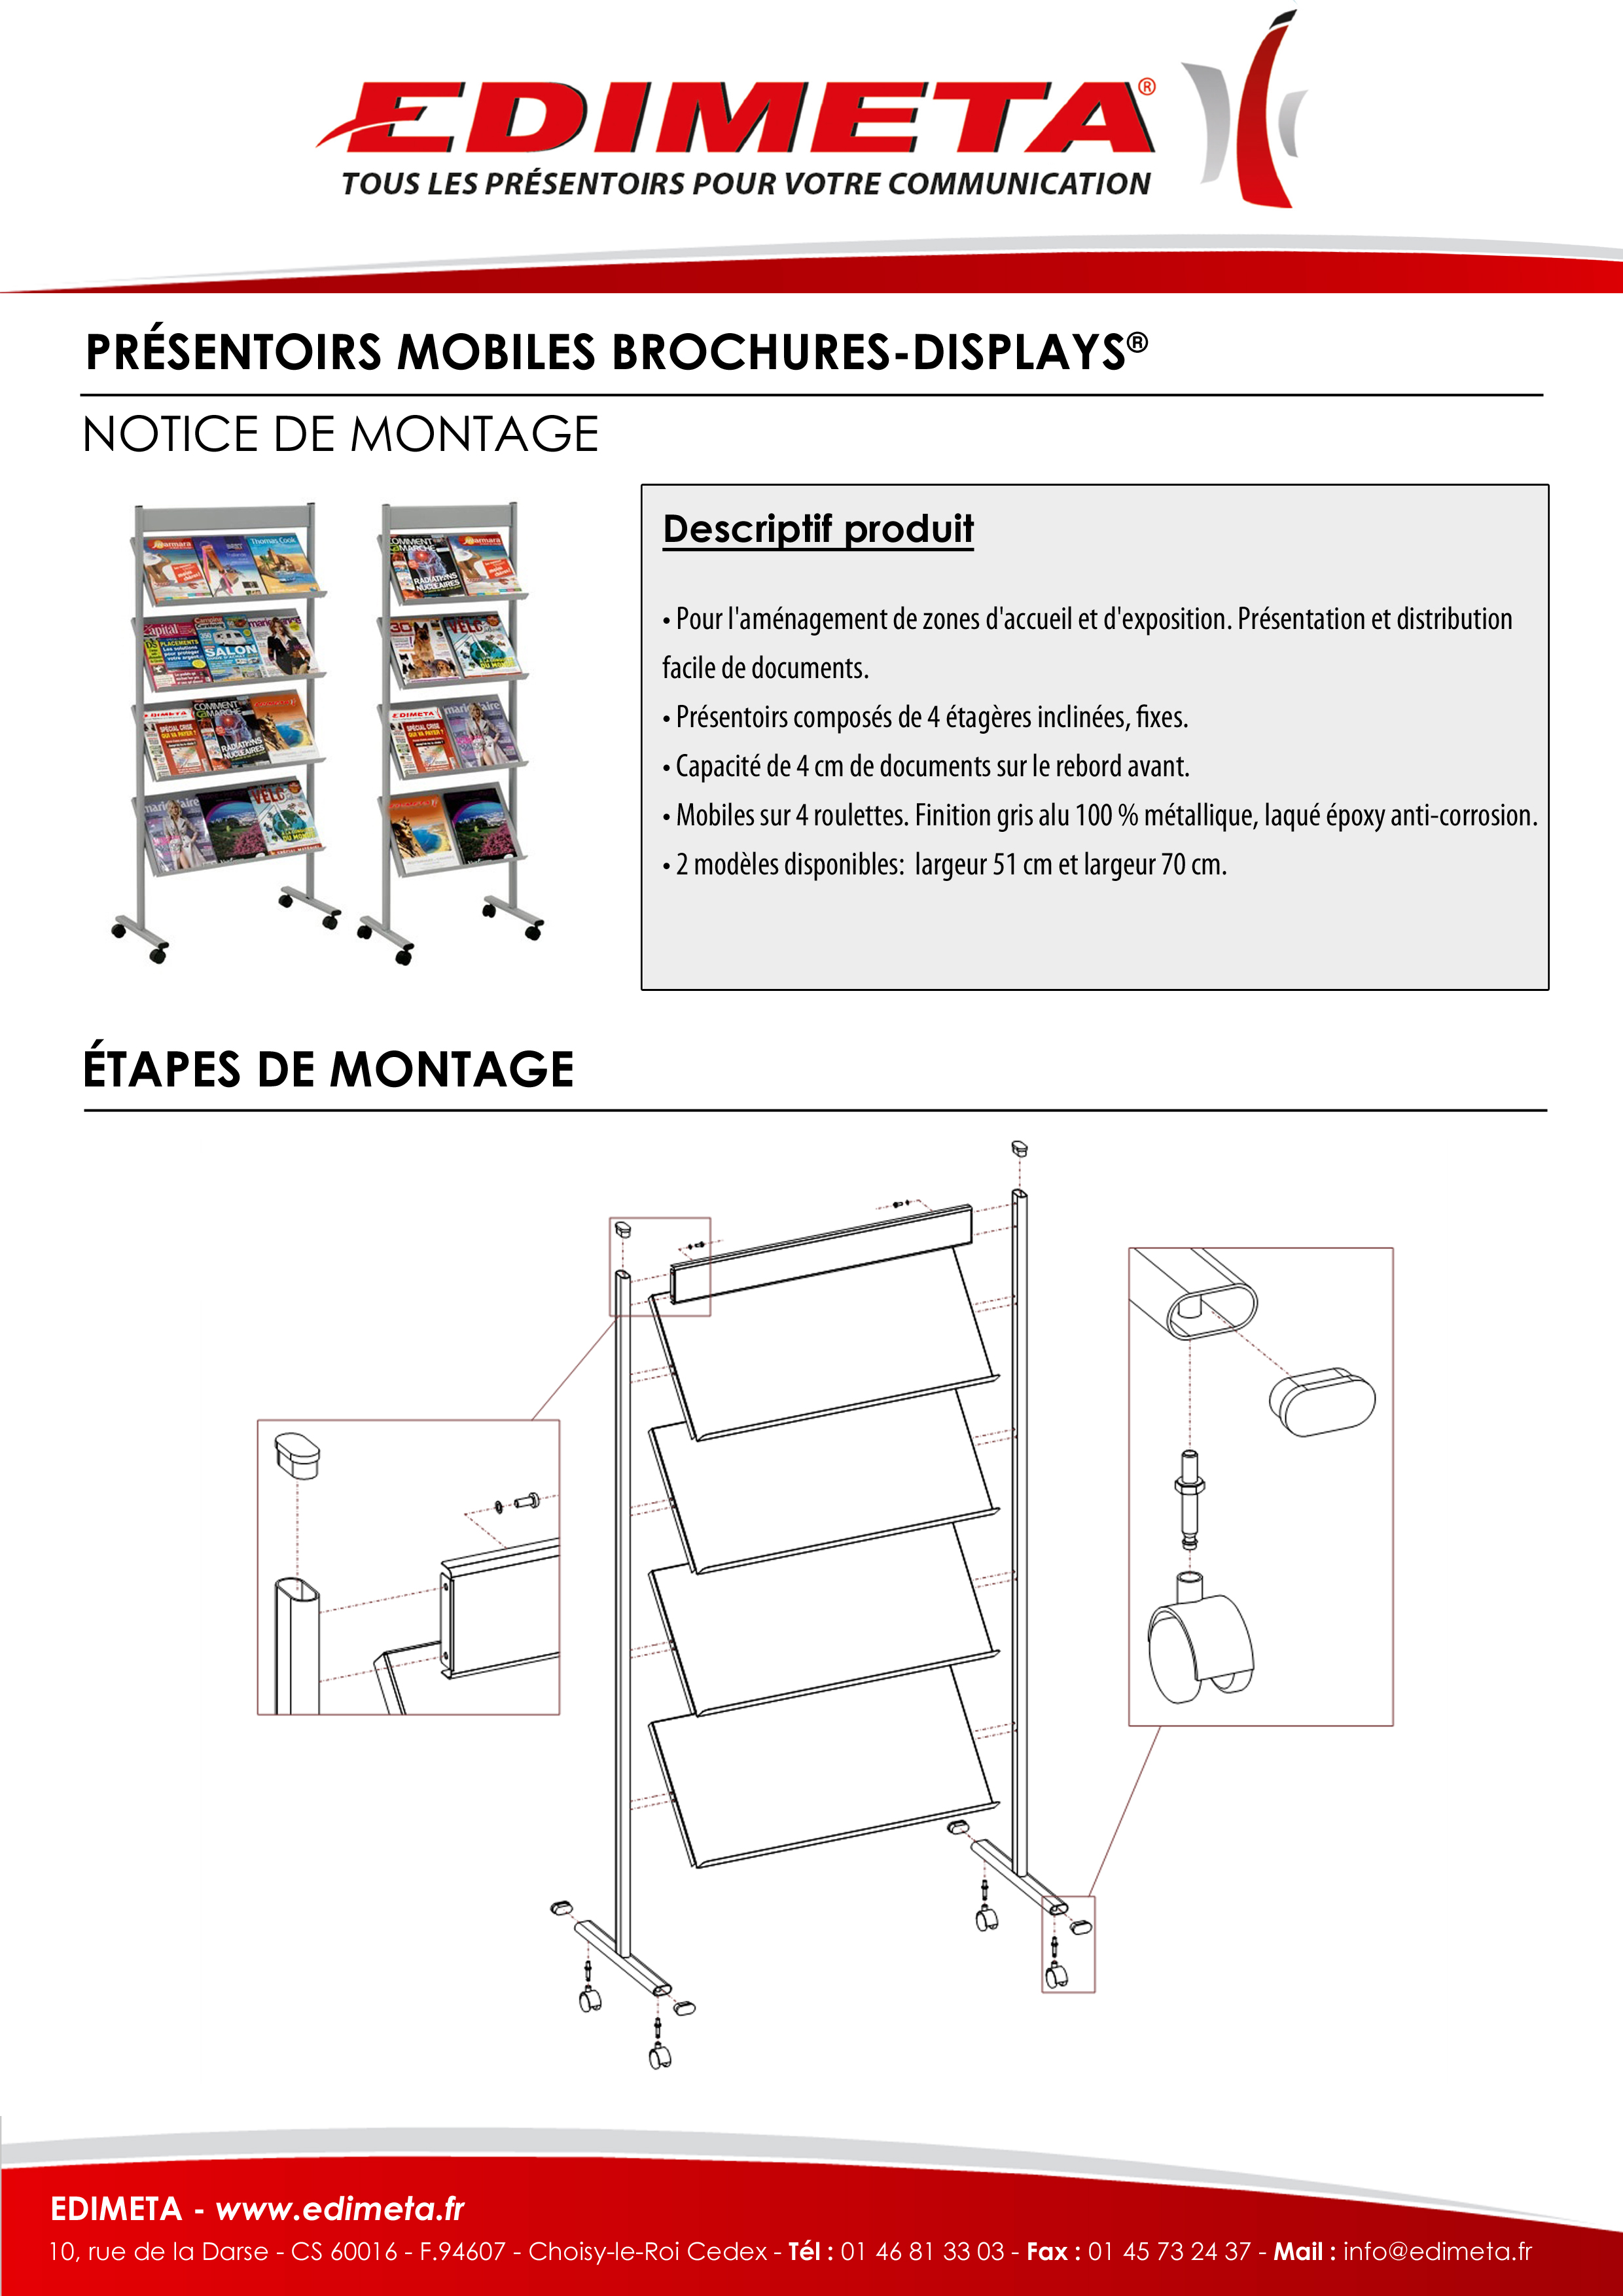 NOTICE DE MONTAGE : PRÉSENTOIRS MOBILES BROCHURES-DISPLAYS®